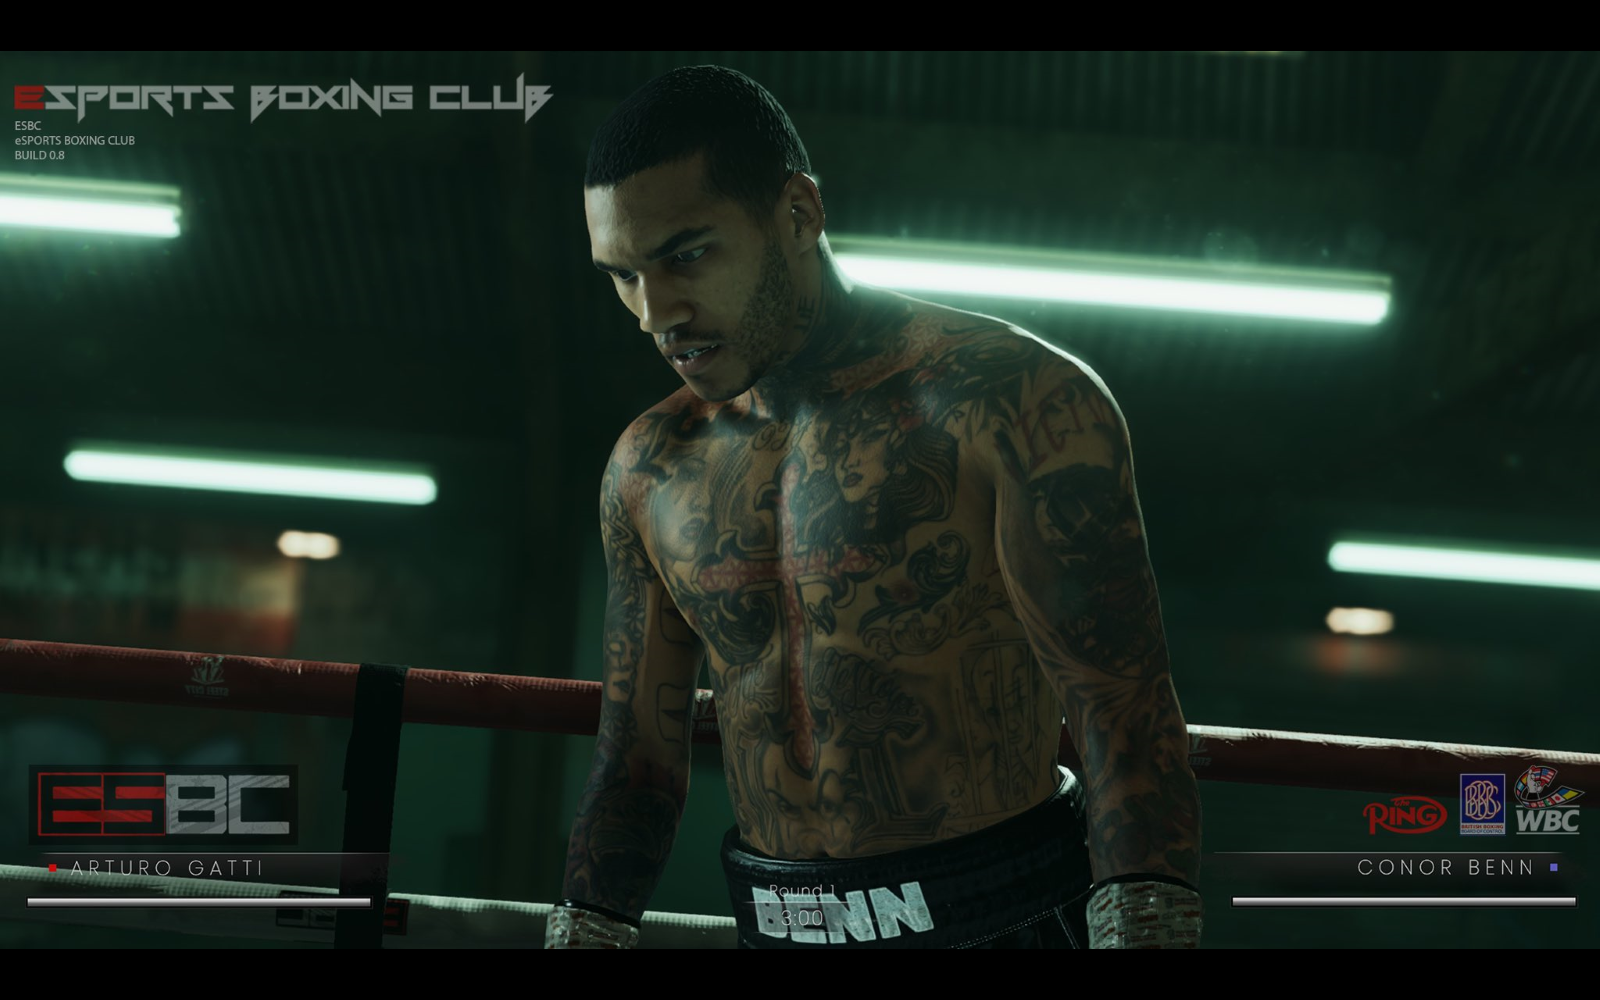 Stunning Gameplay Footage Revealed For New Boxing Game – eSports Boxing Club